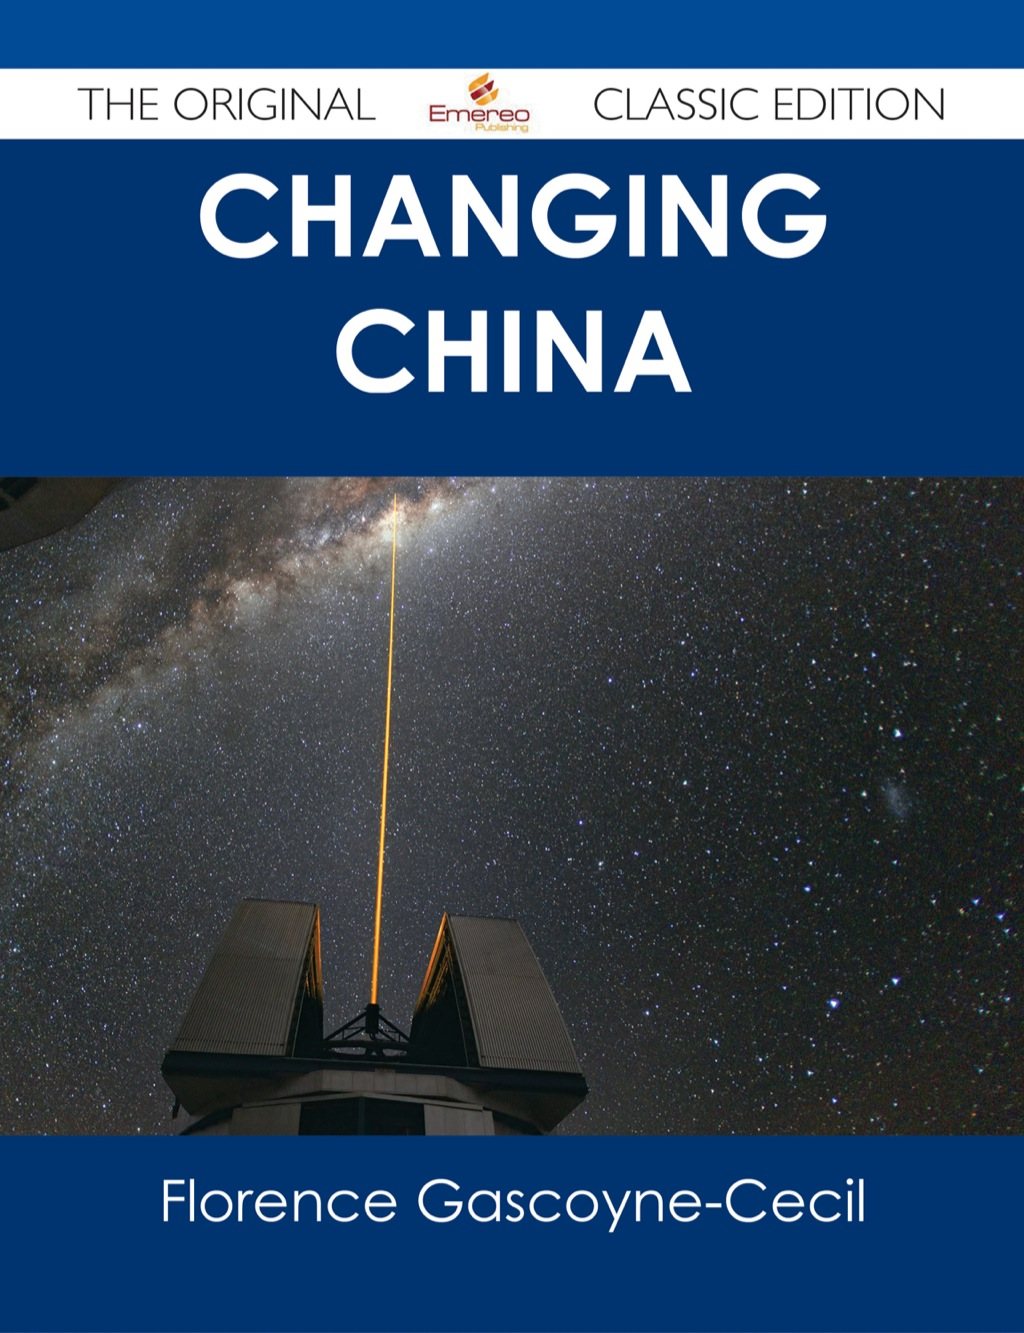 Changing China - The Original Classic Edition (ebook) eBooks